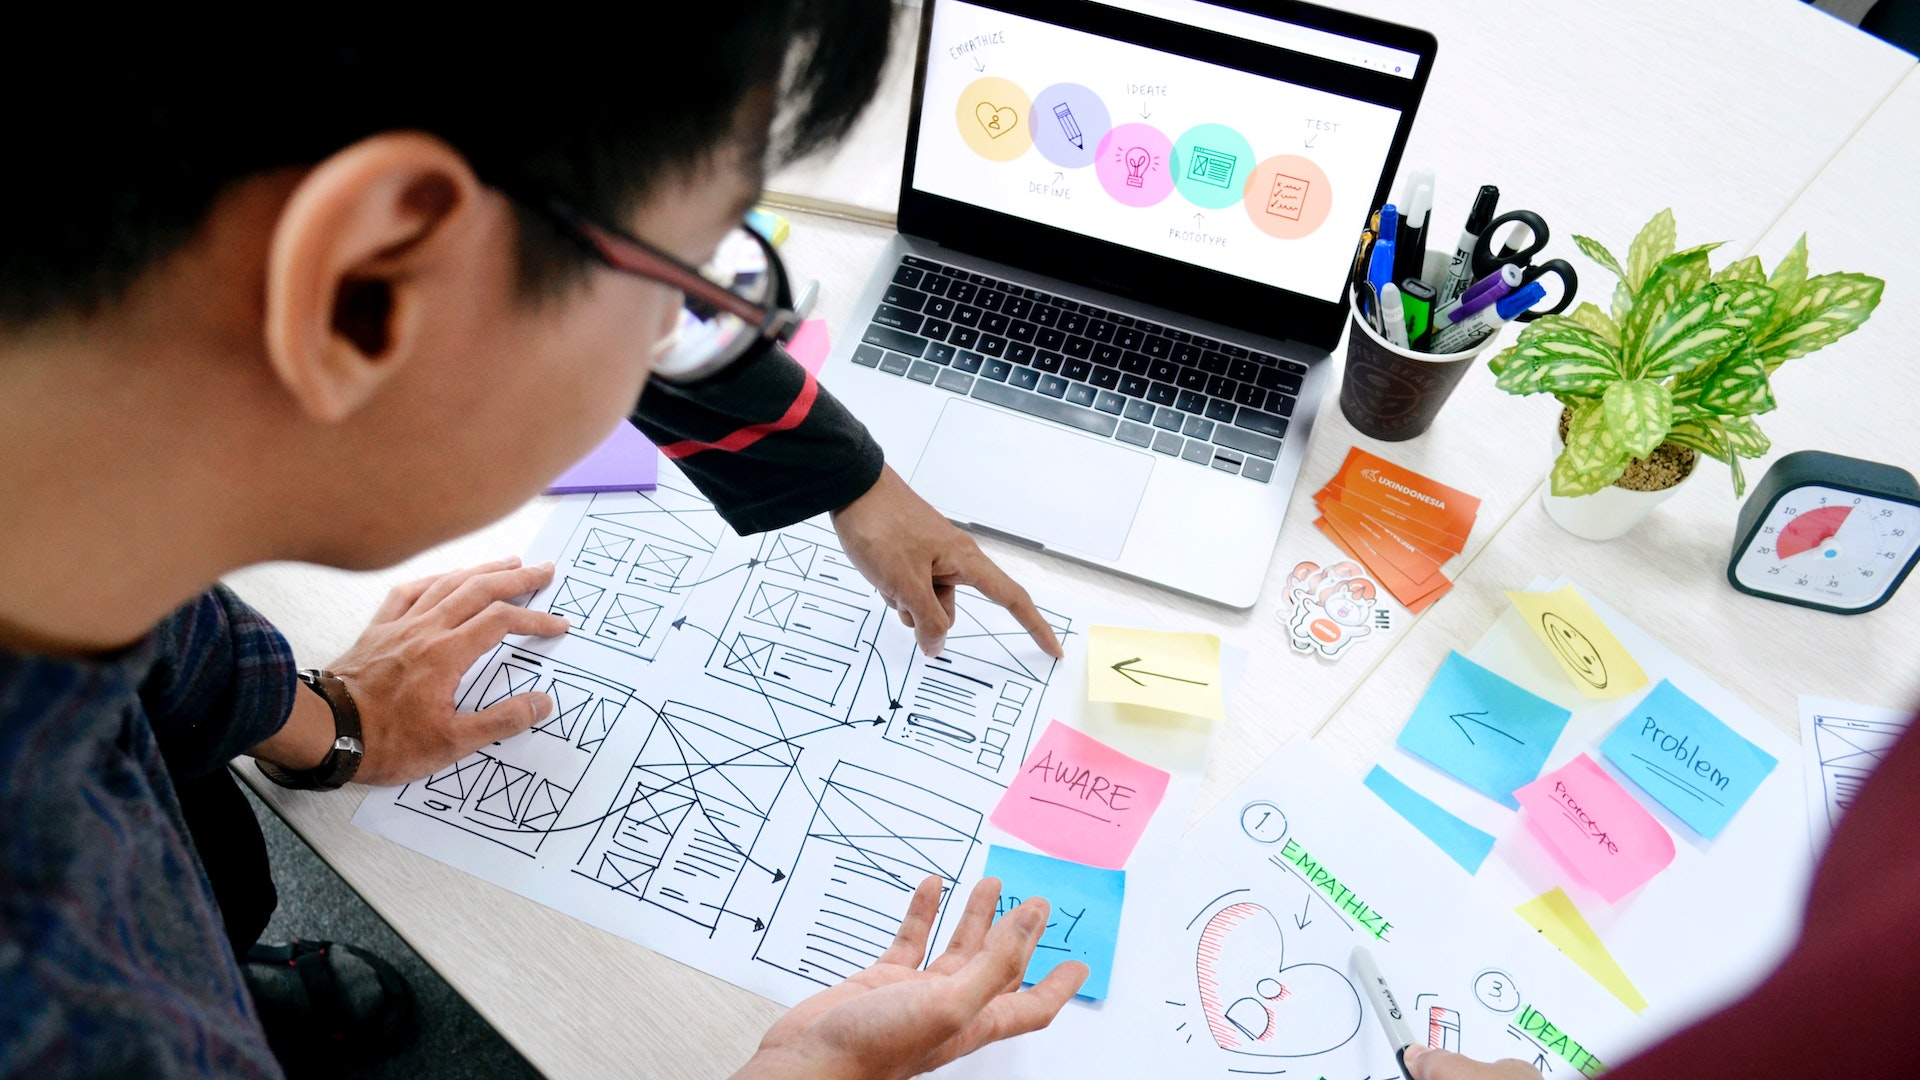 Hands pointing at paper prototypes on a desk. A laptop is open on the table and colourful sticky notes surround it.